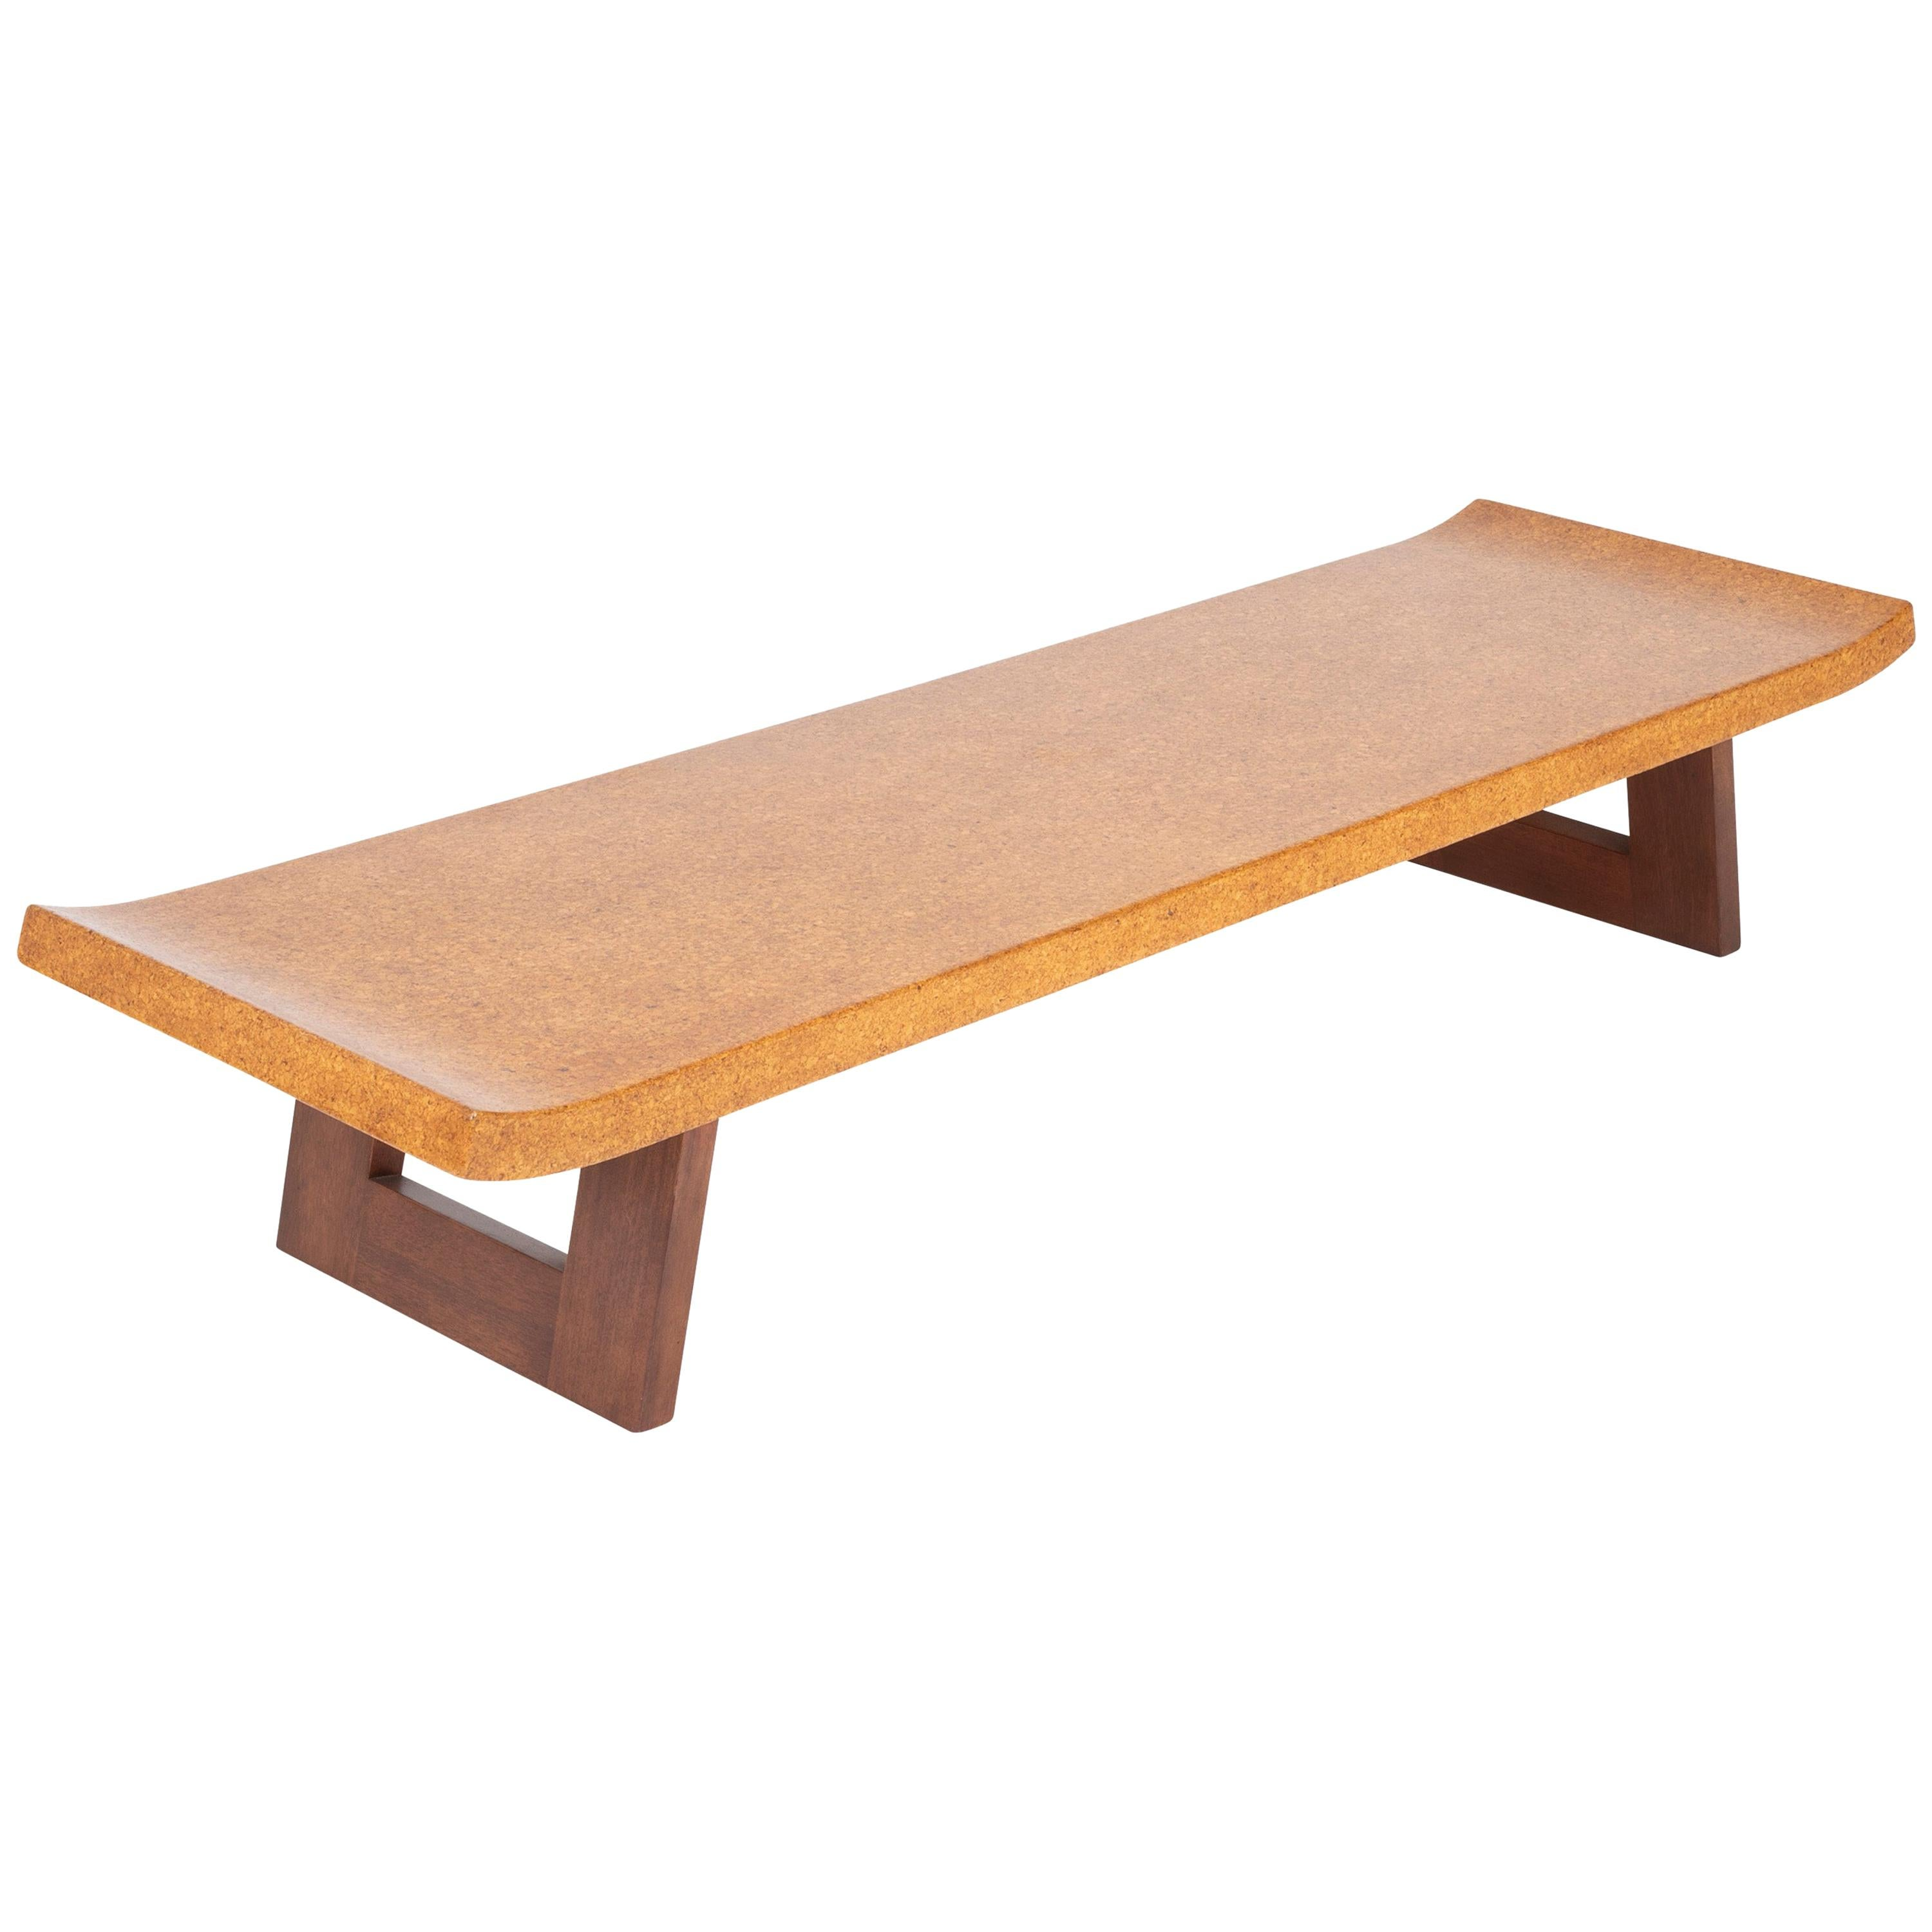 Cork Top Coffee Table by Paul Frankl